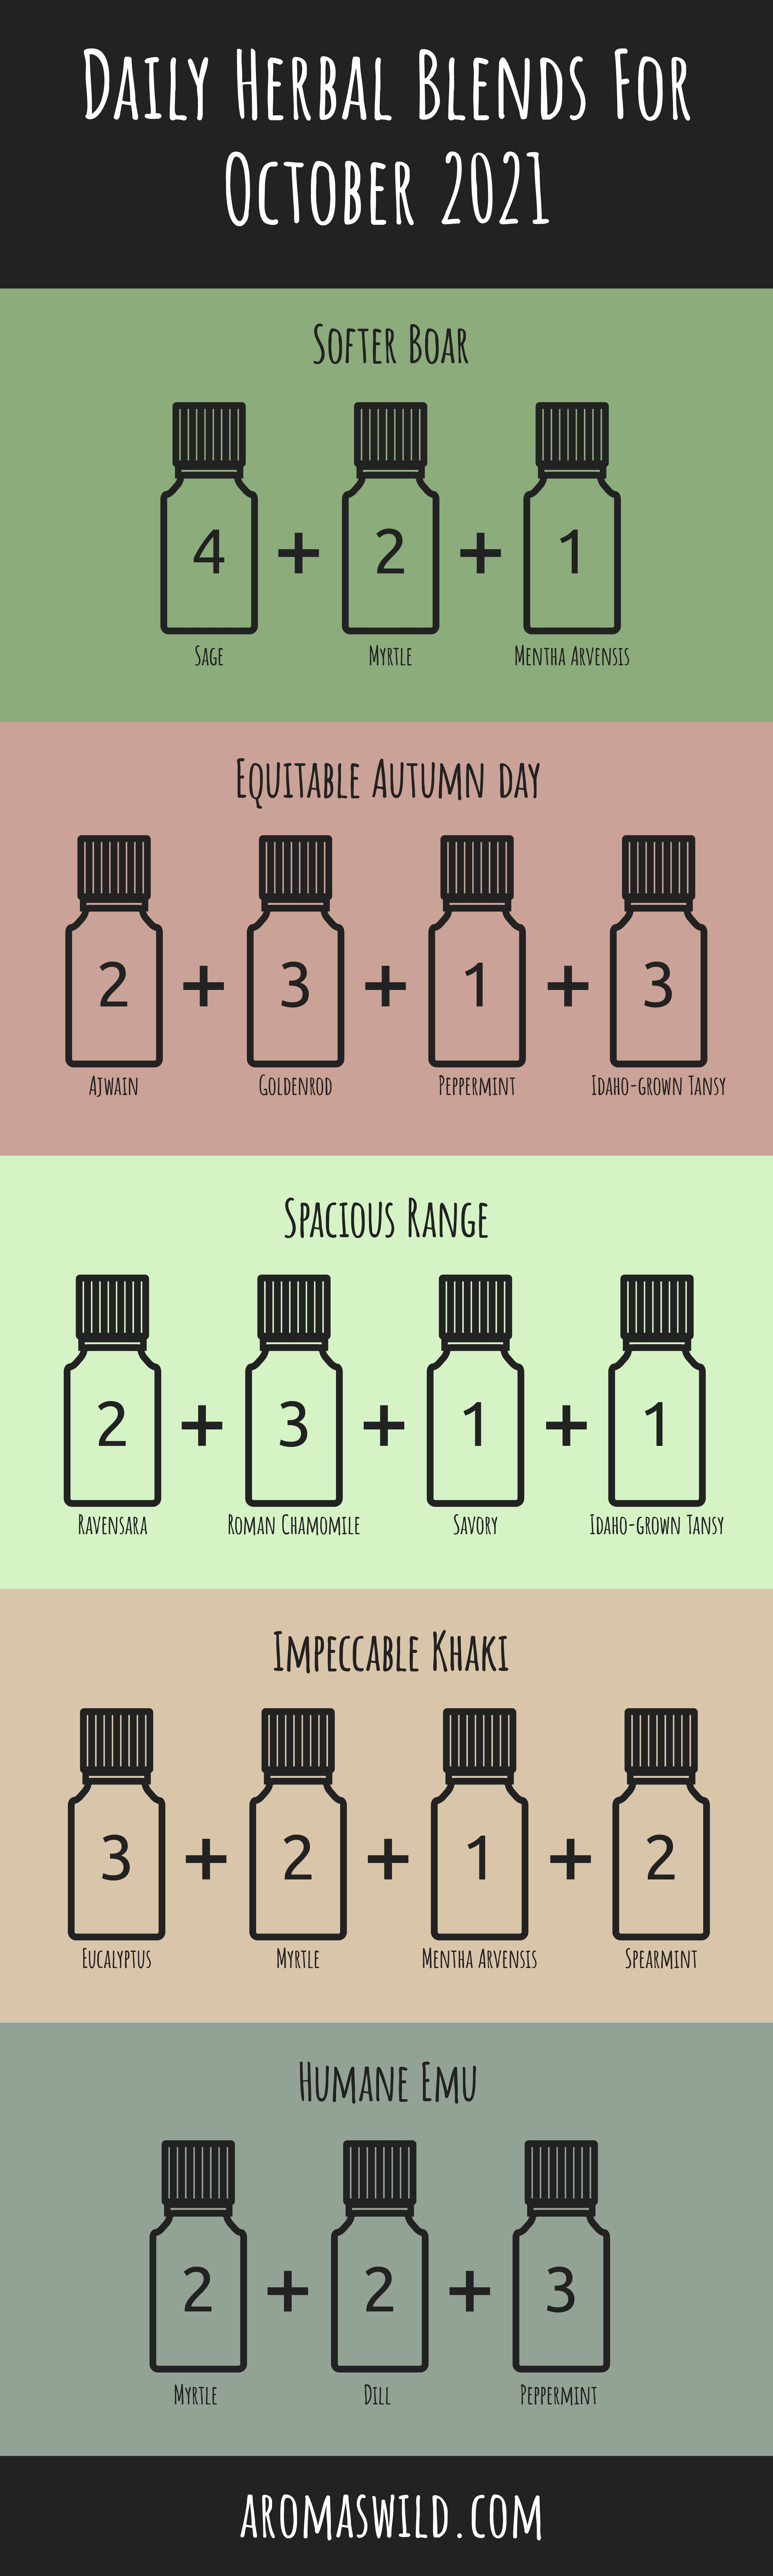 Herbal Oil Blends To Use In Diffuser – Daily Herbal Blends For 22 October 2021